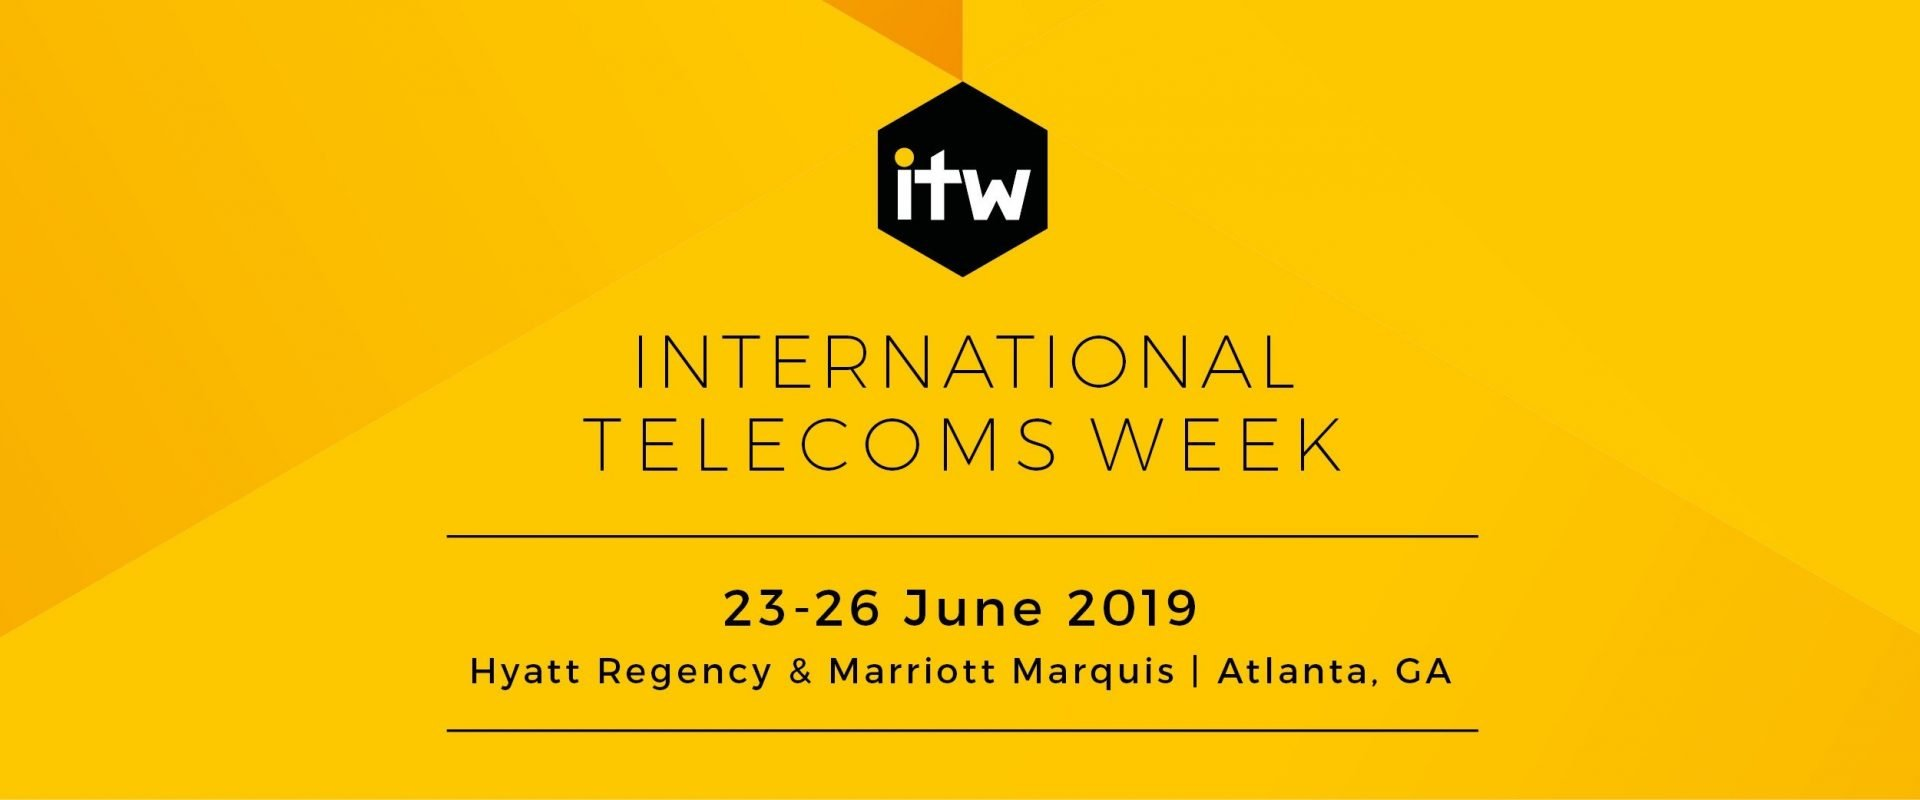 Stream Leadership Attending International Telecoms Week 2019